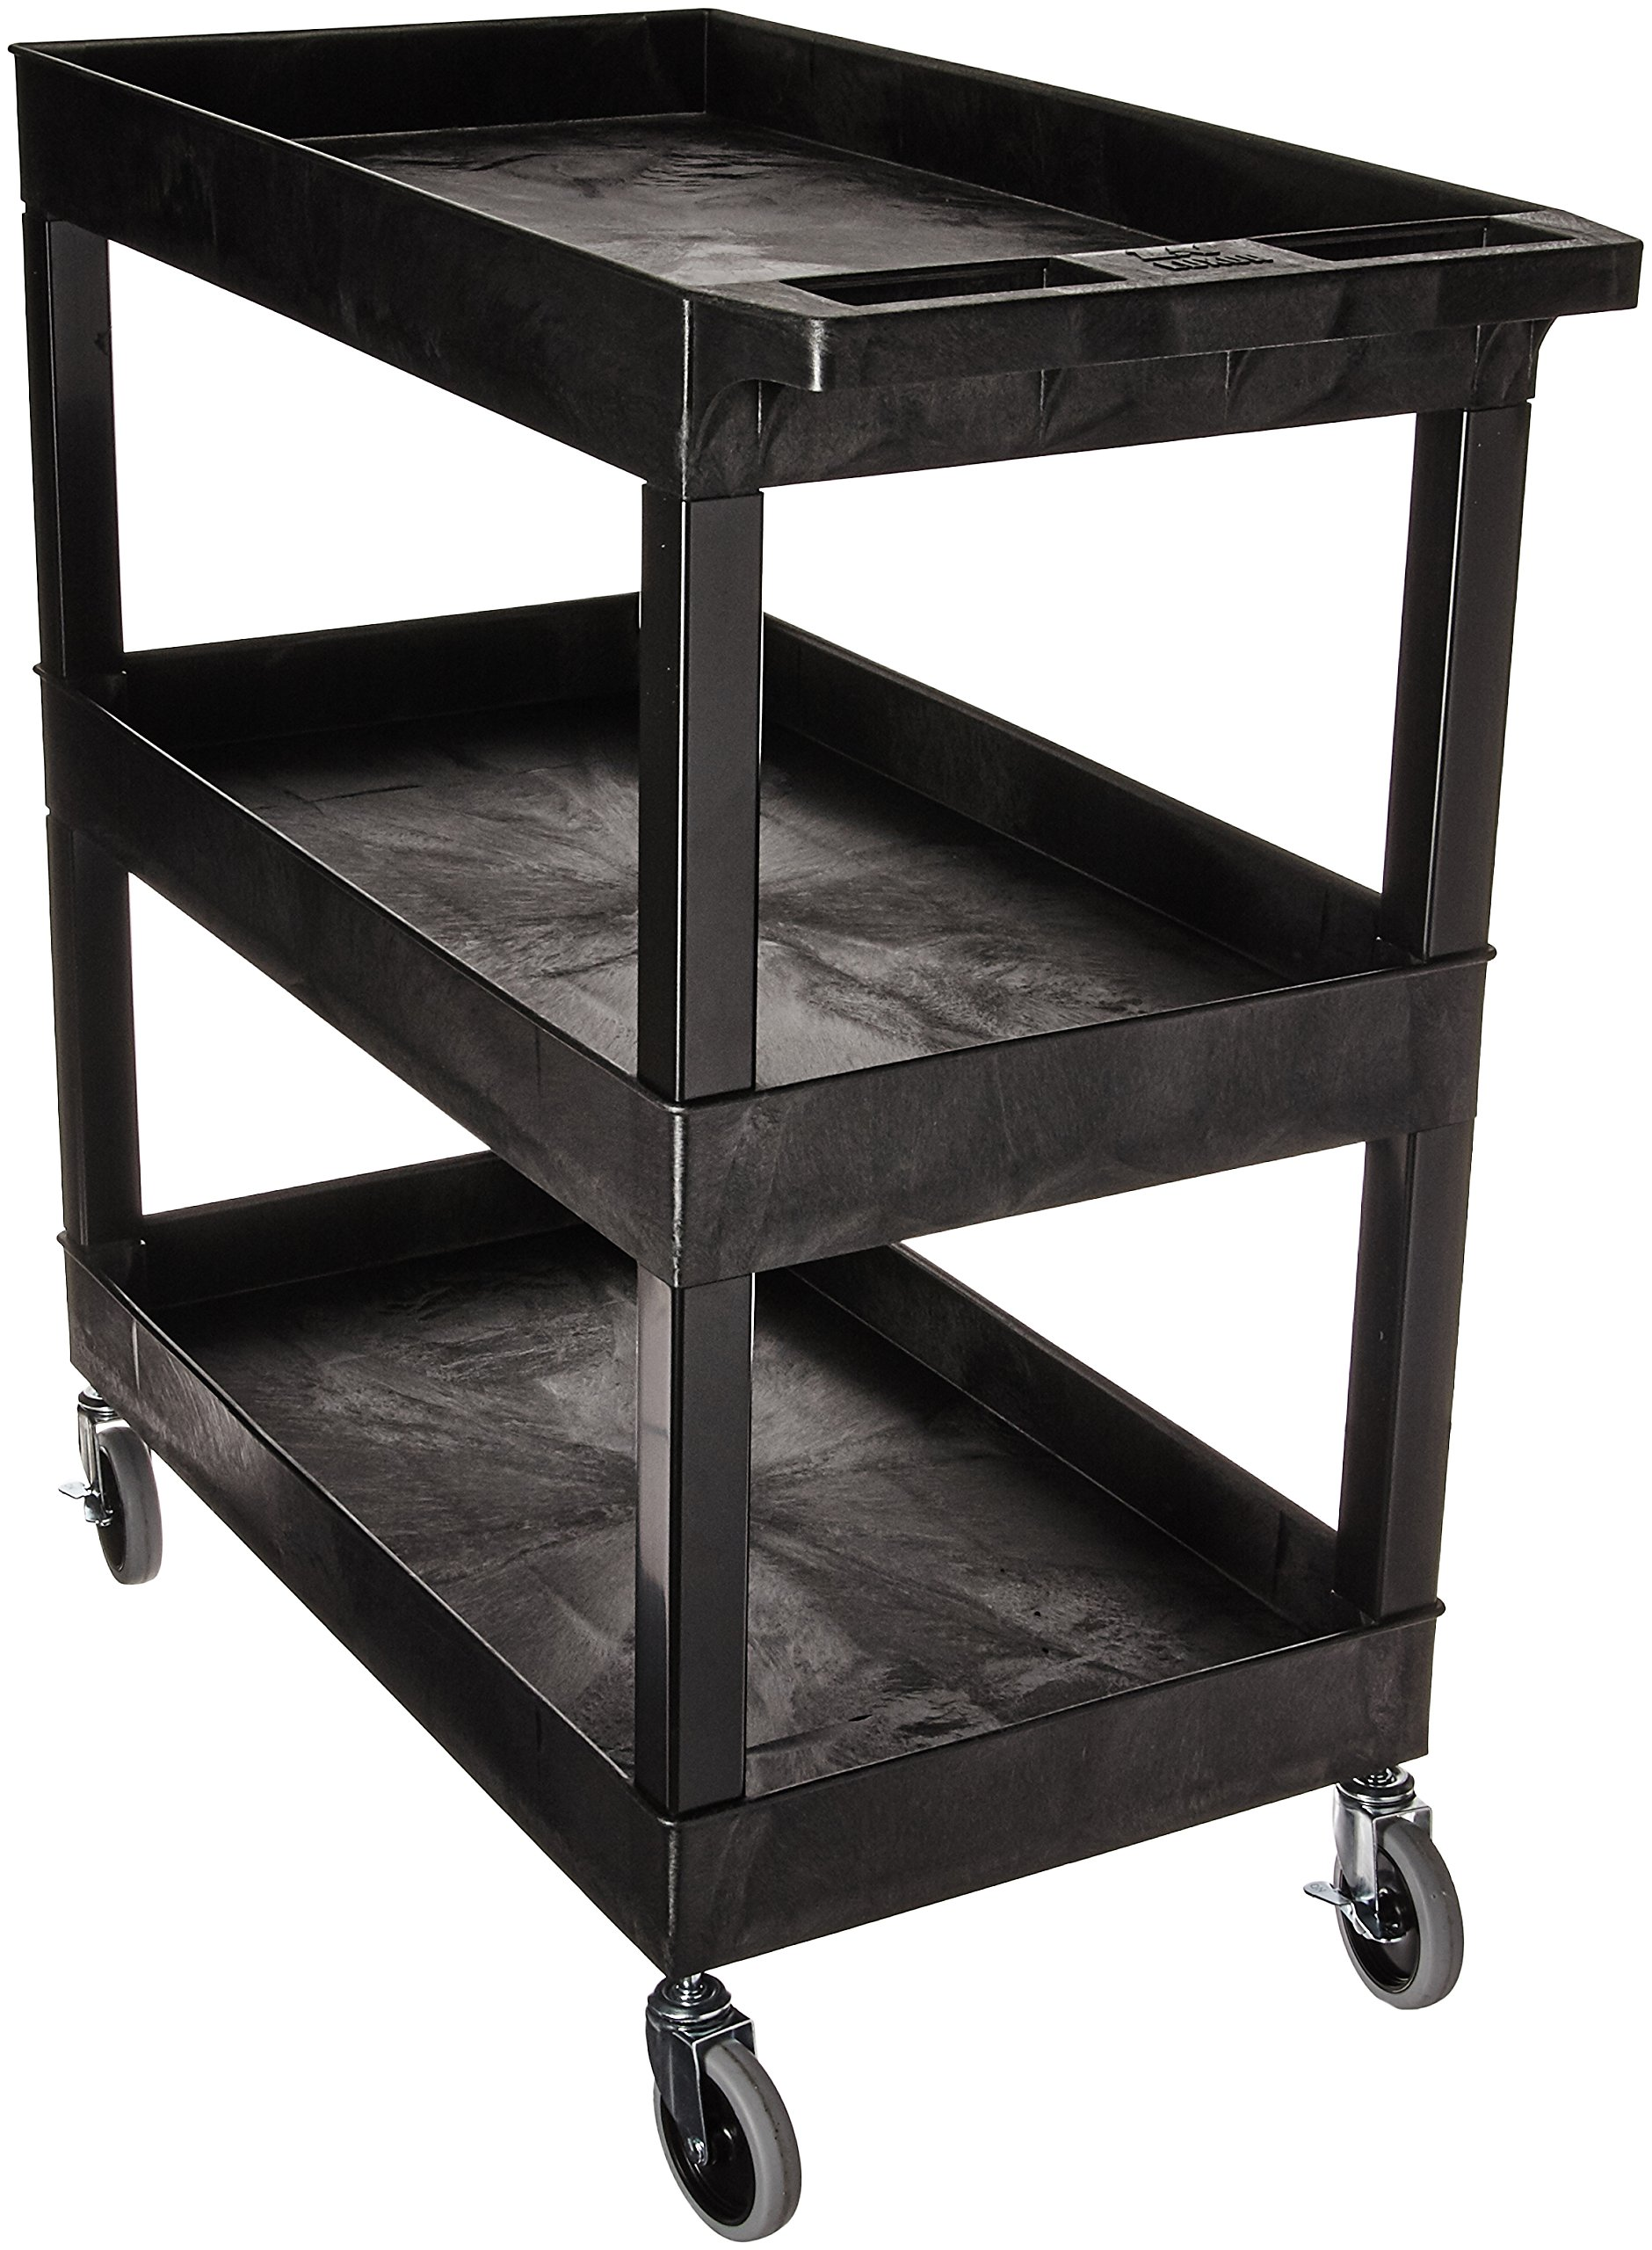 Luxor EC111-B Tub Storage Cart 3 Shelves - Black,32'' x 18'' by Luxor